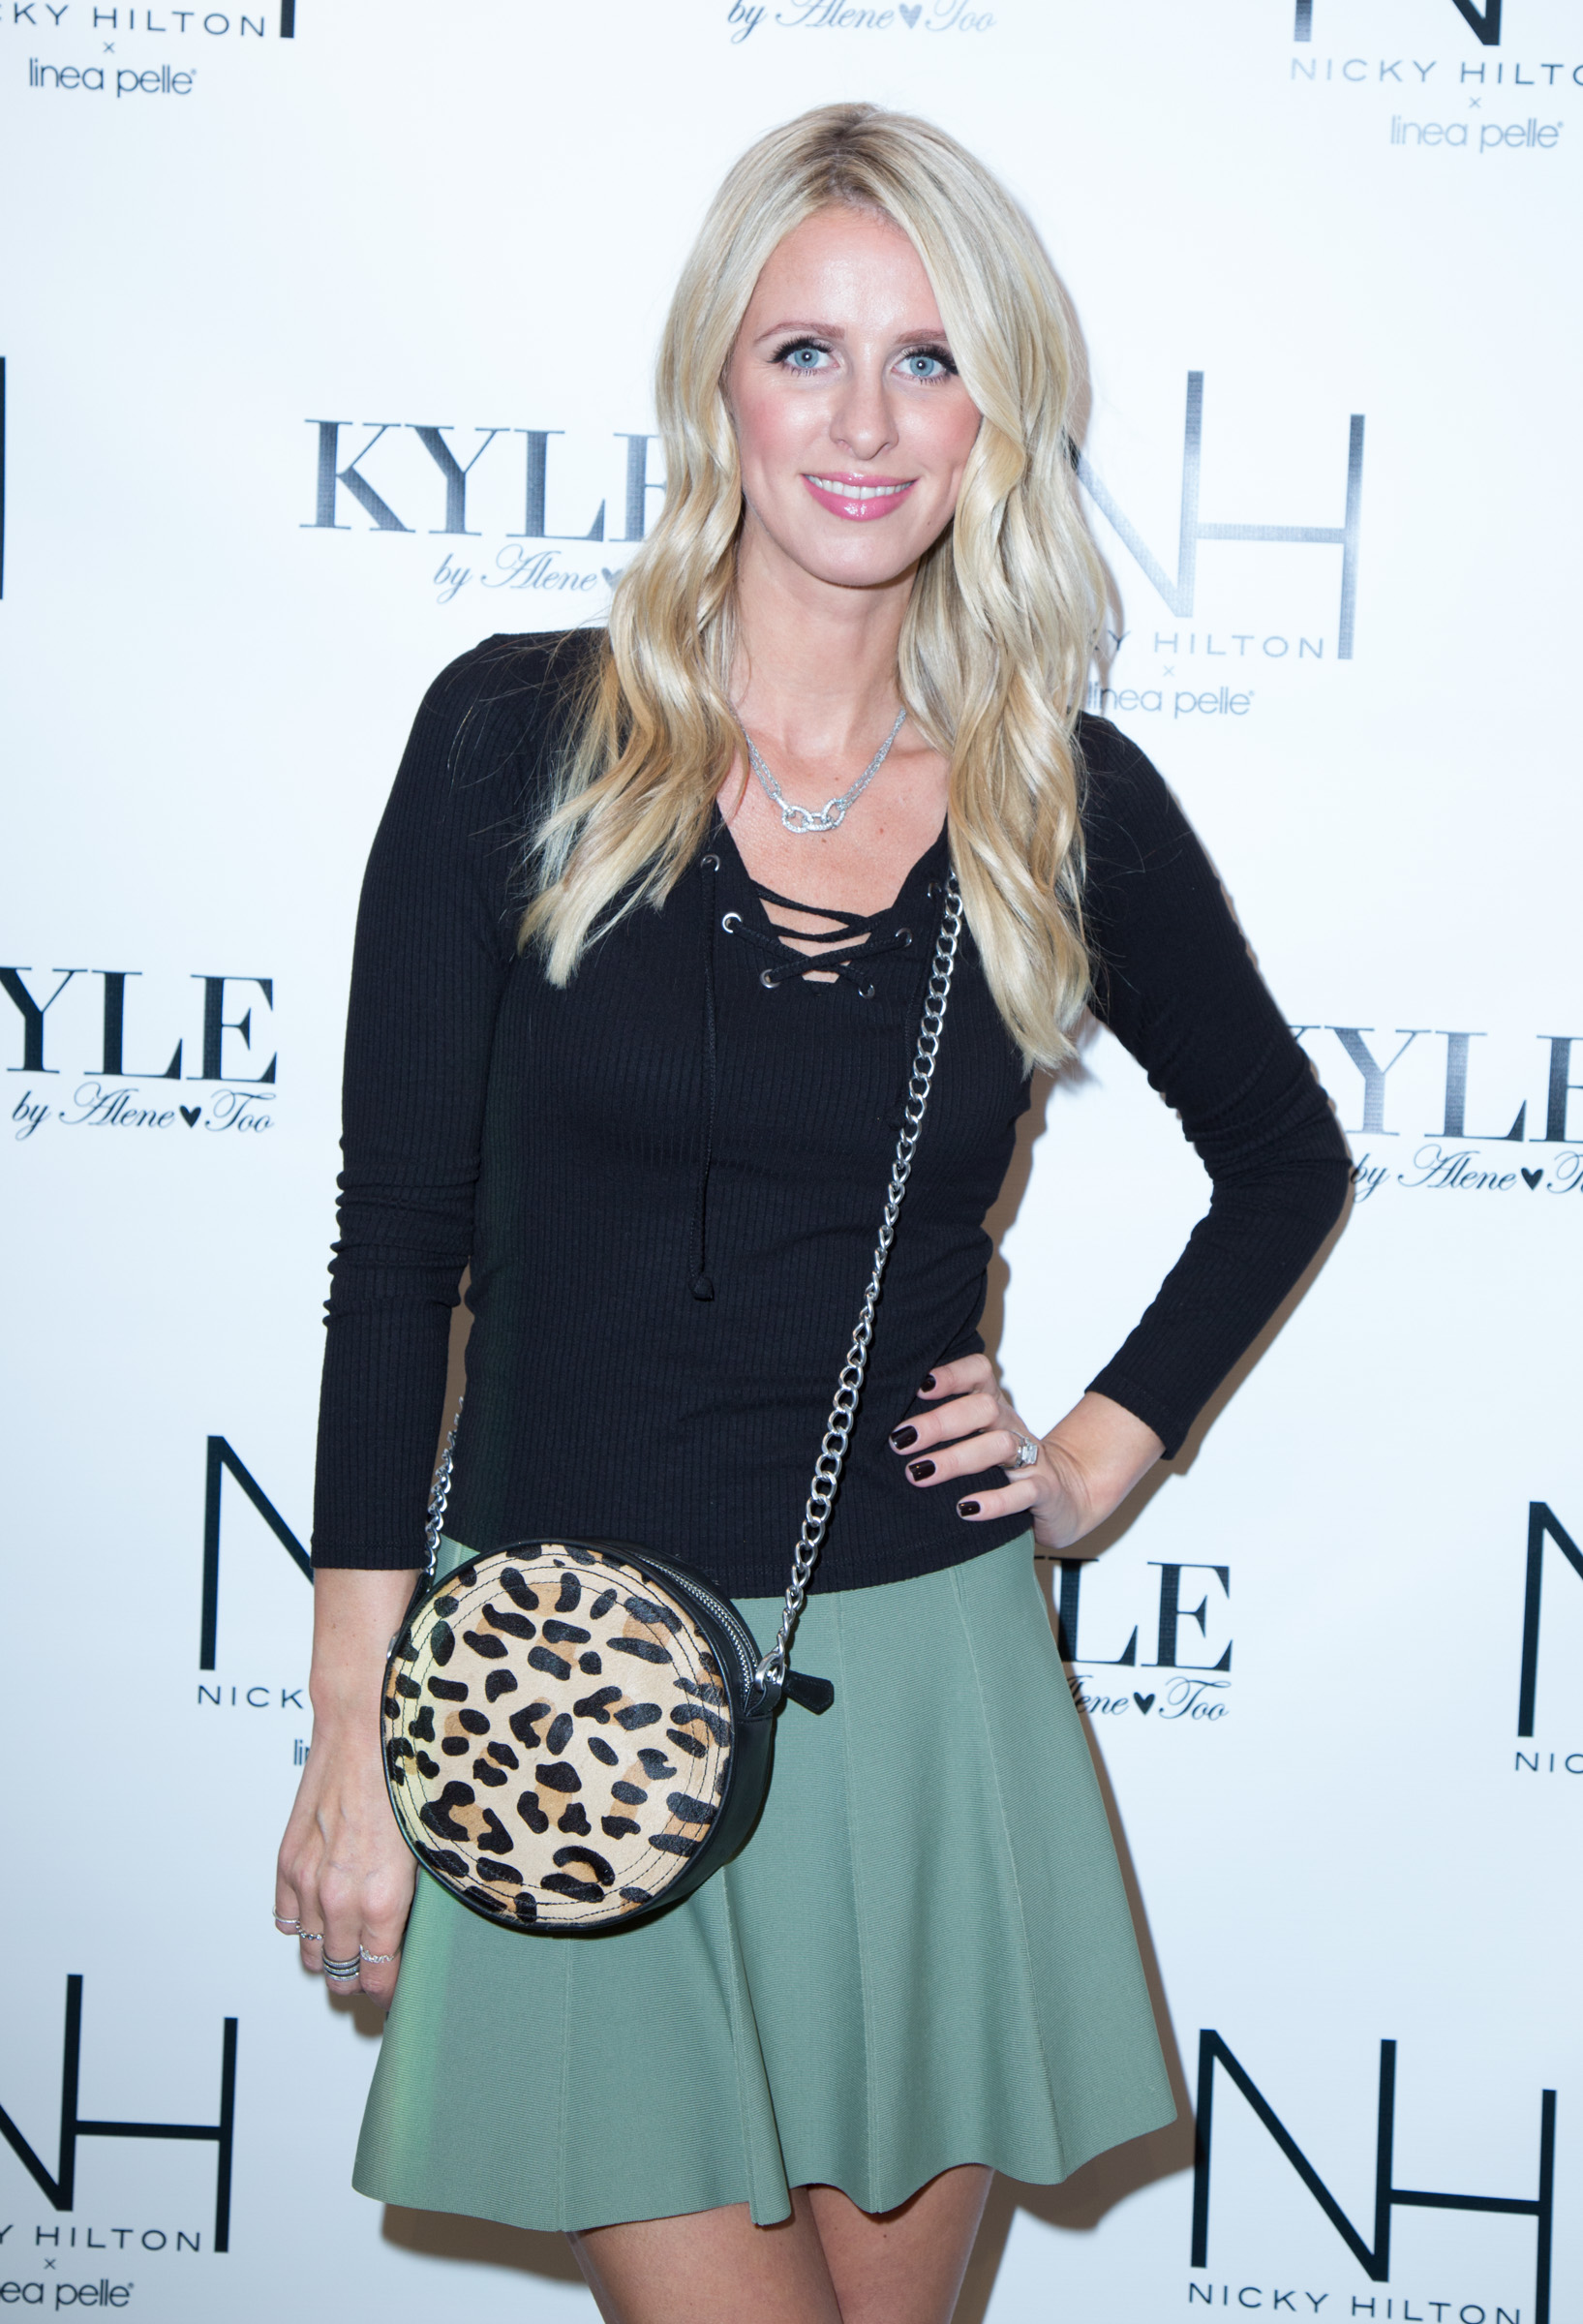 Nicky Hilton Shows Her New Fall 2015 Handbag Capsule Collection ... a8d469d3a9436